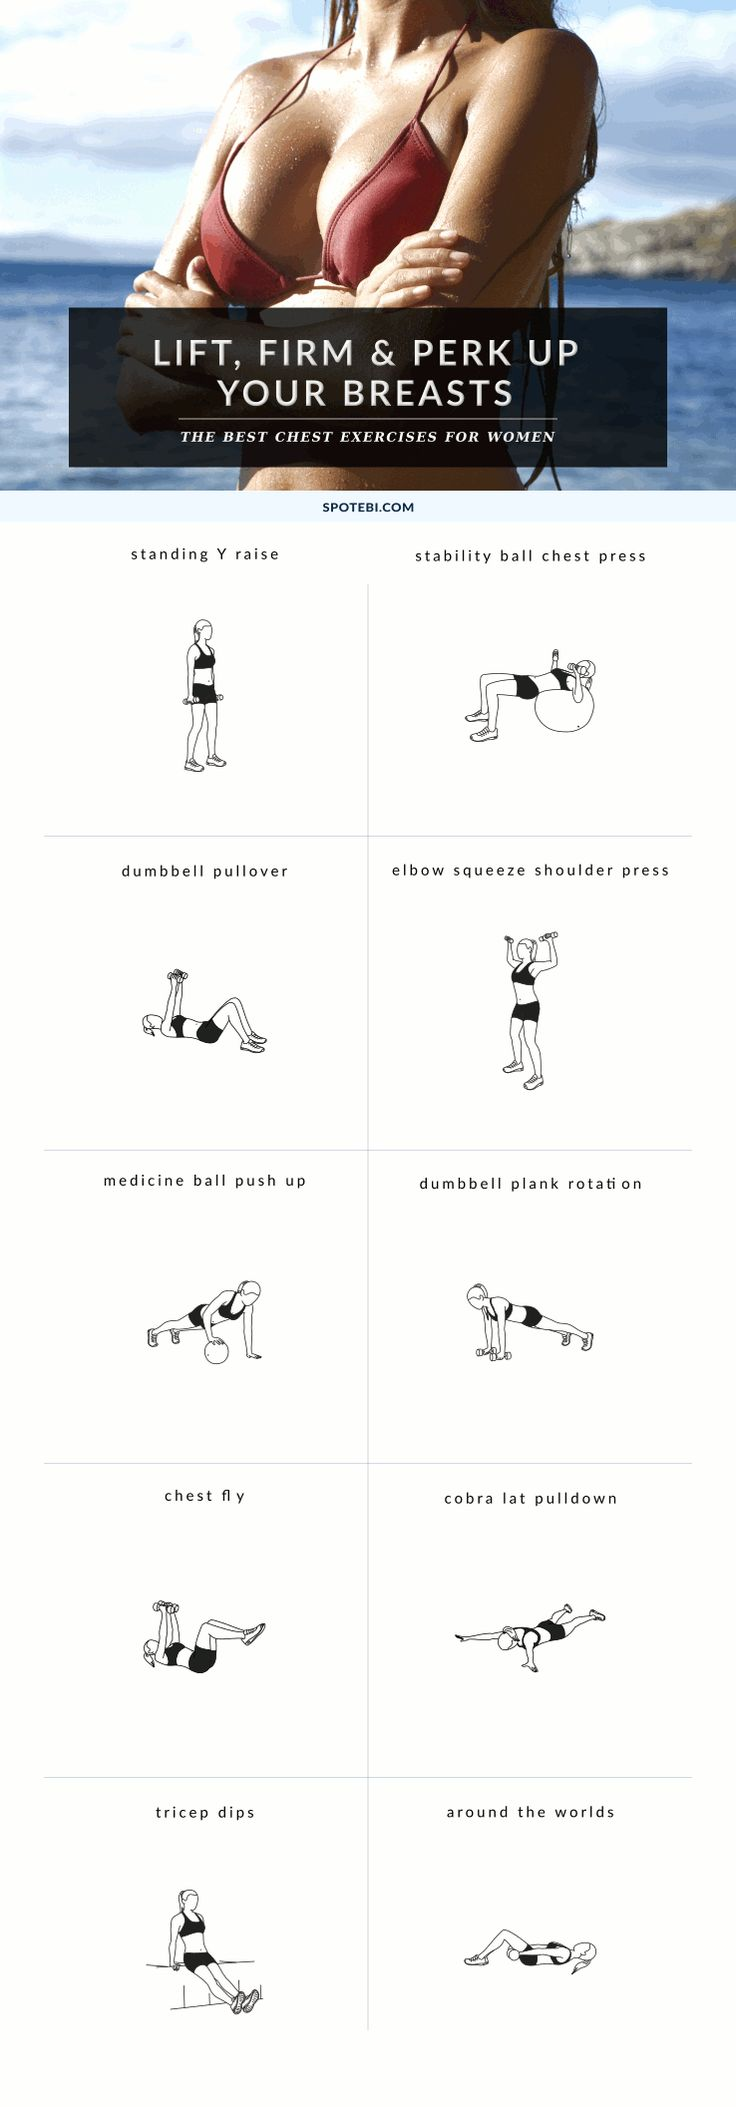 Try these 10 chest exercises to give your bust line a lift and make your breasts appear bigger and perkier, the natural way! http://www.spotebi.com/fitness-tips/the-best-chest-exercises-for-women/